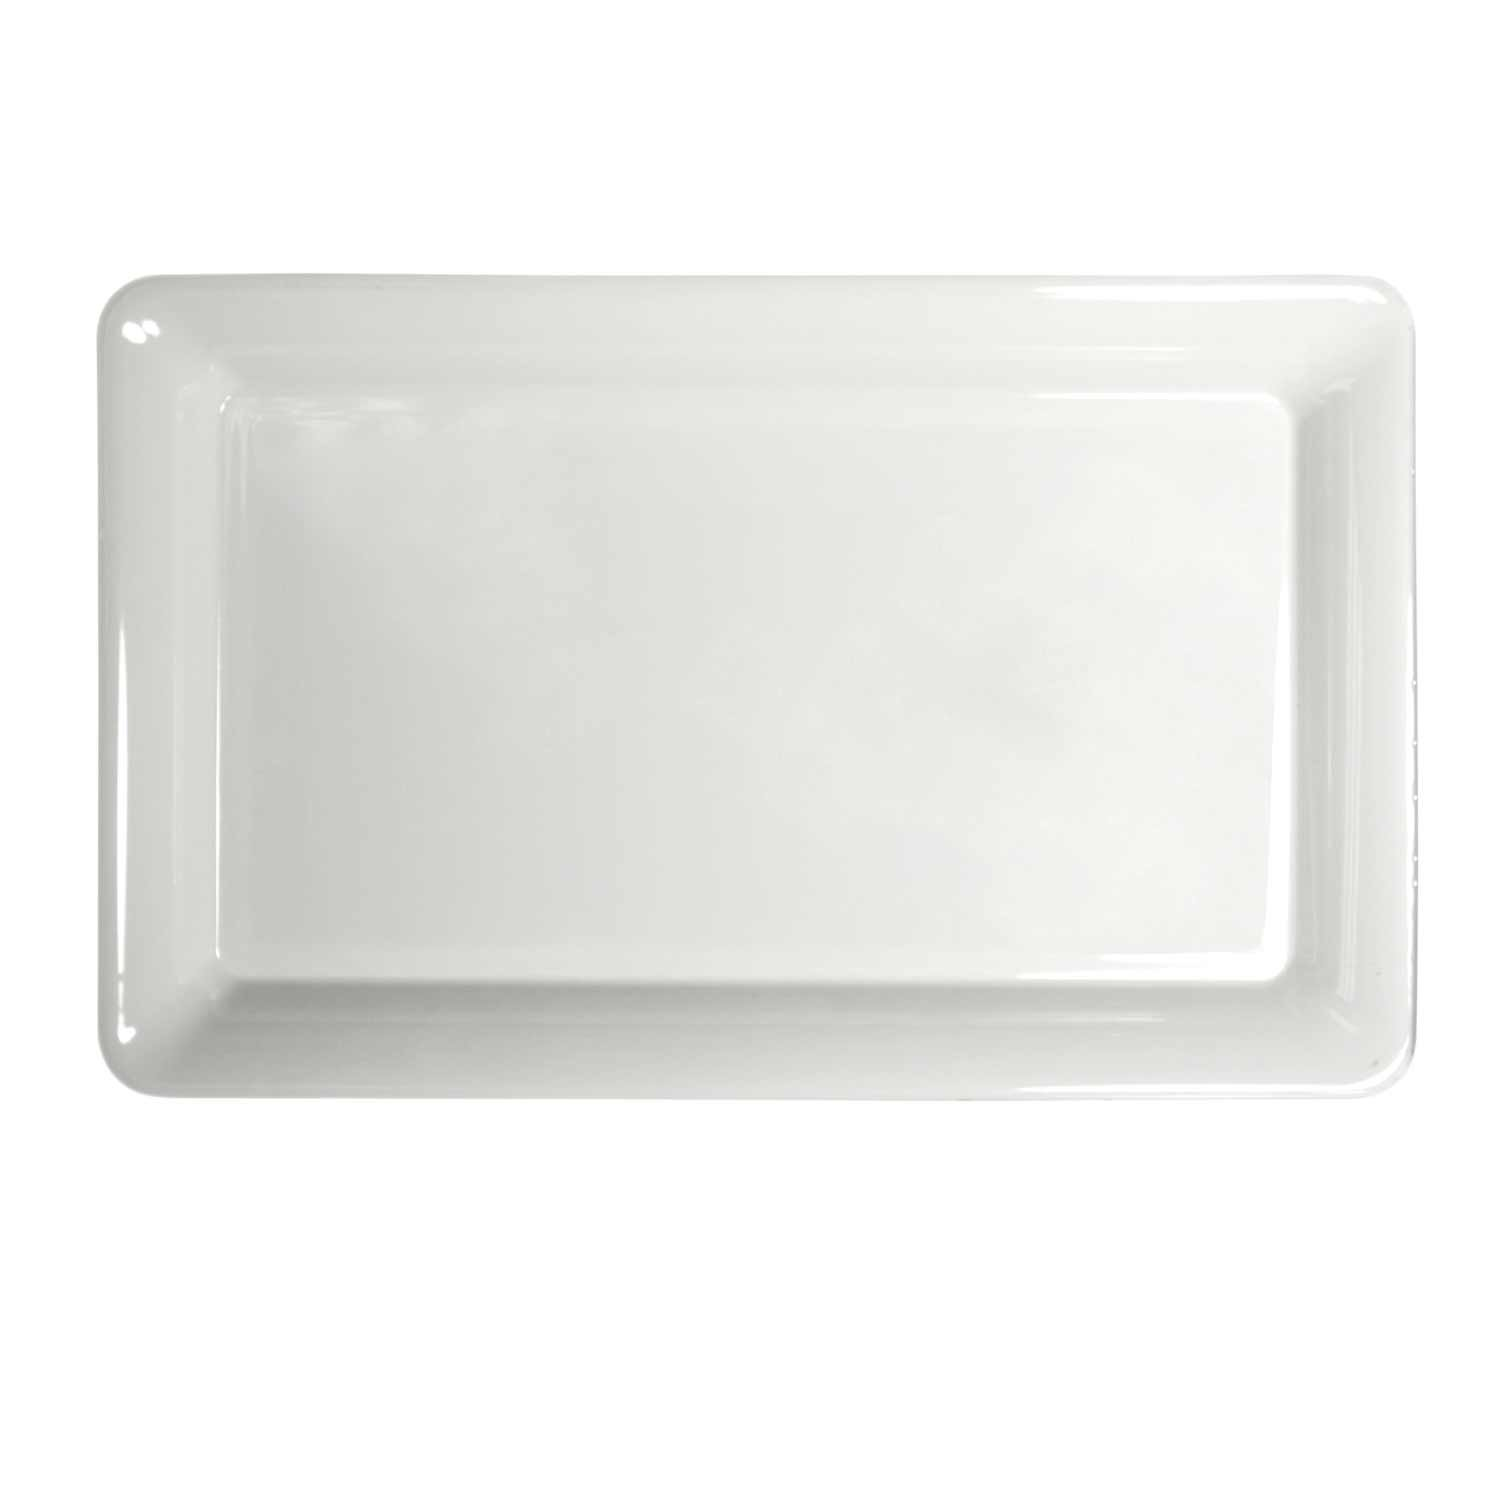 Party Essentials Heavy Duty Plastic Rectangular Tray, 12'' Length x 18'' Width, White (Case of 6)